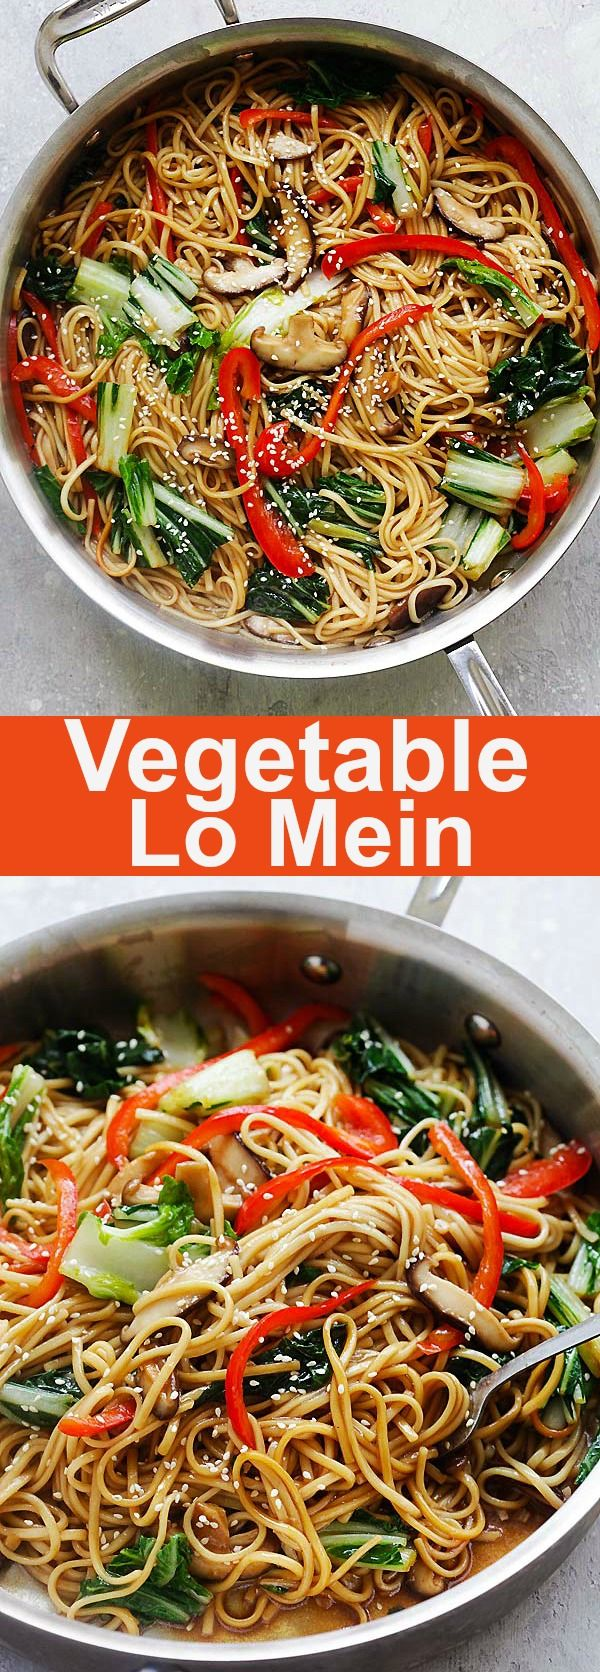 437 best Chinese Recipes images on Pinterest   Chinese recipes ...